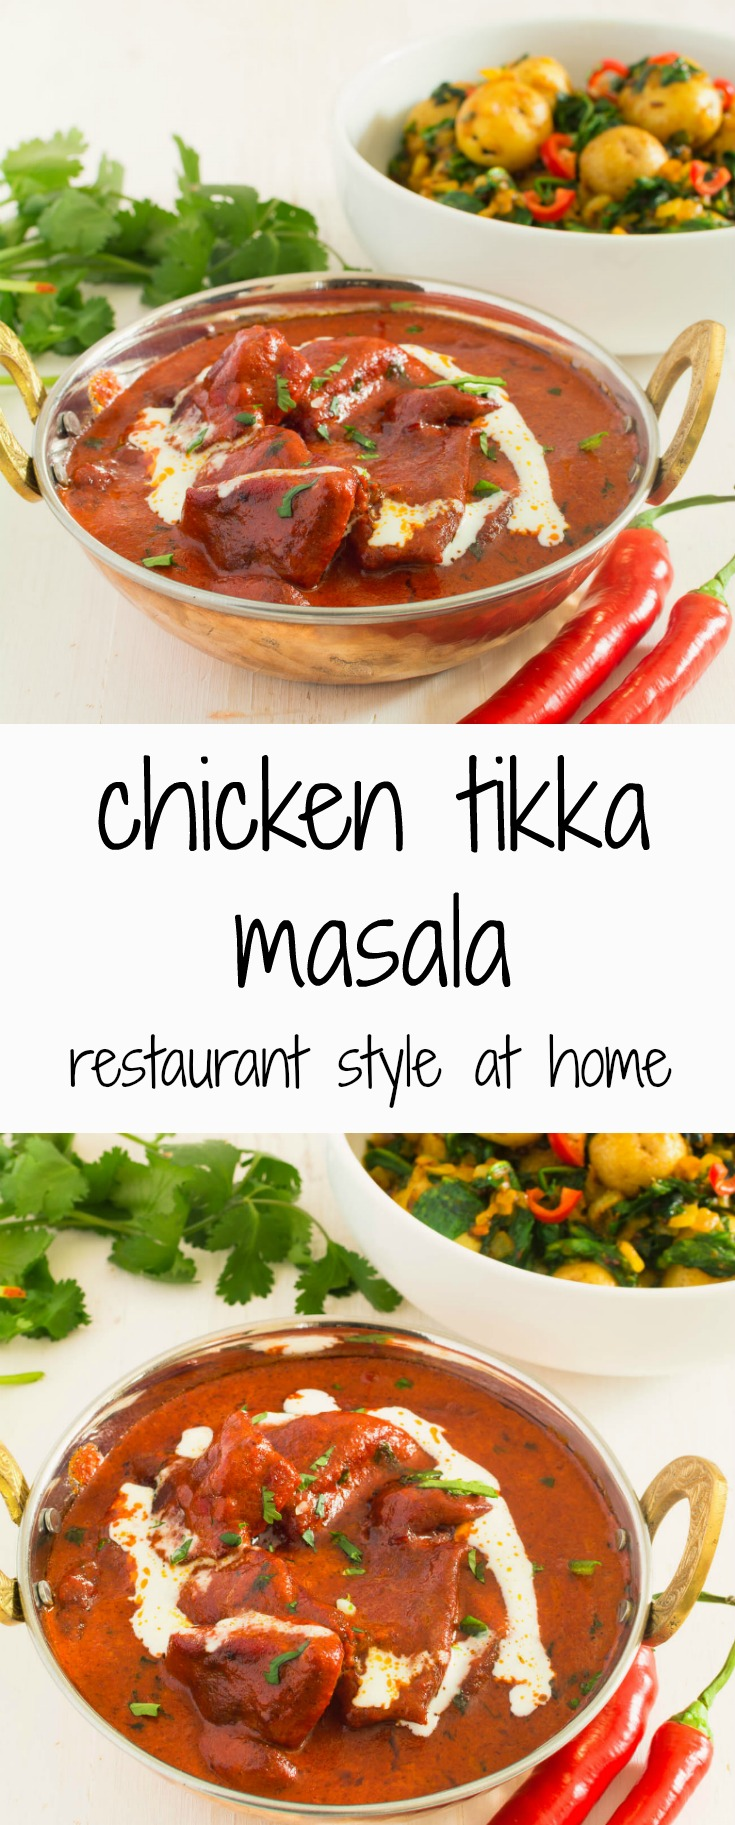 chicken tikka masala is pretty straightforward and follows the indian